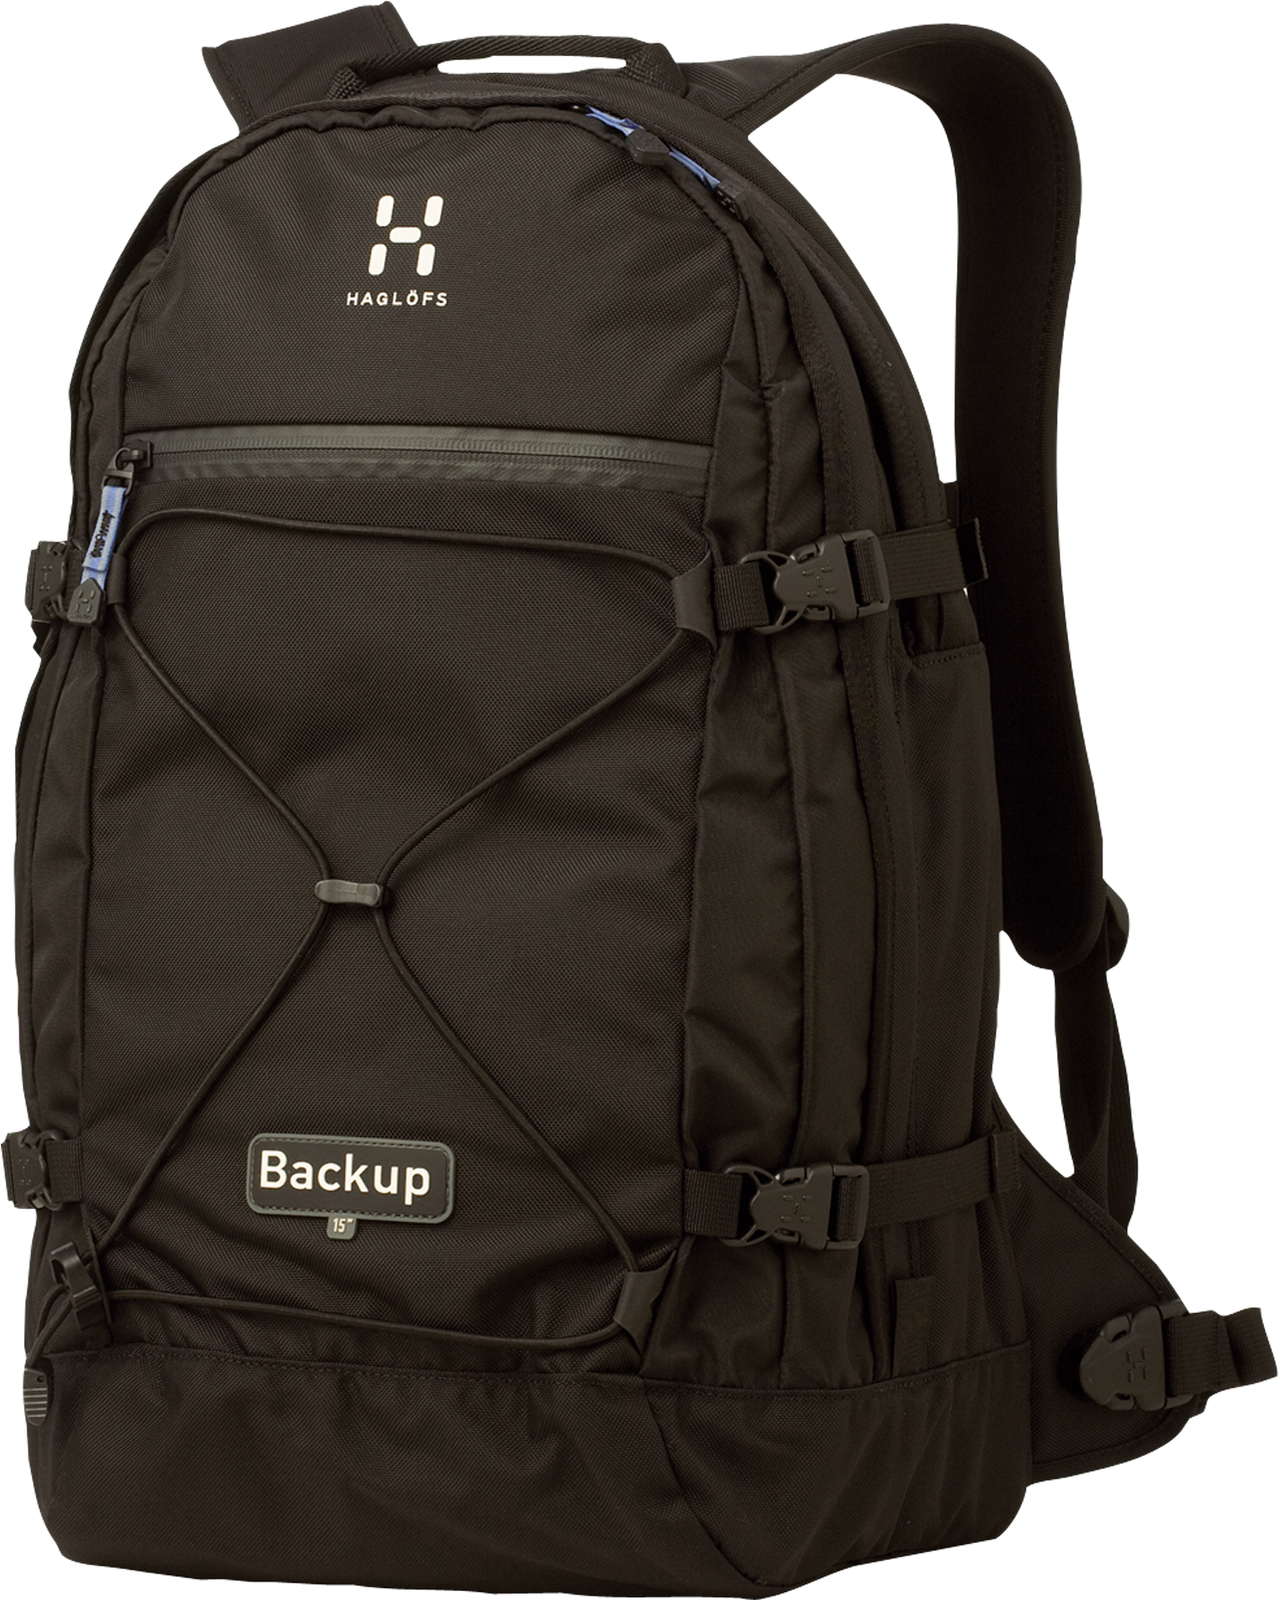 Laptop backpack 15 inch PNG Image.